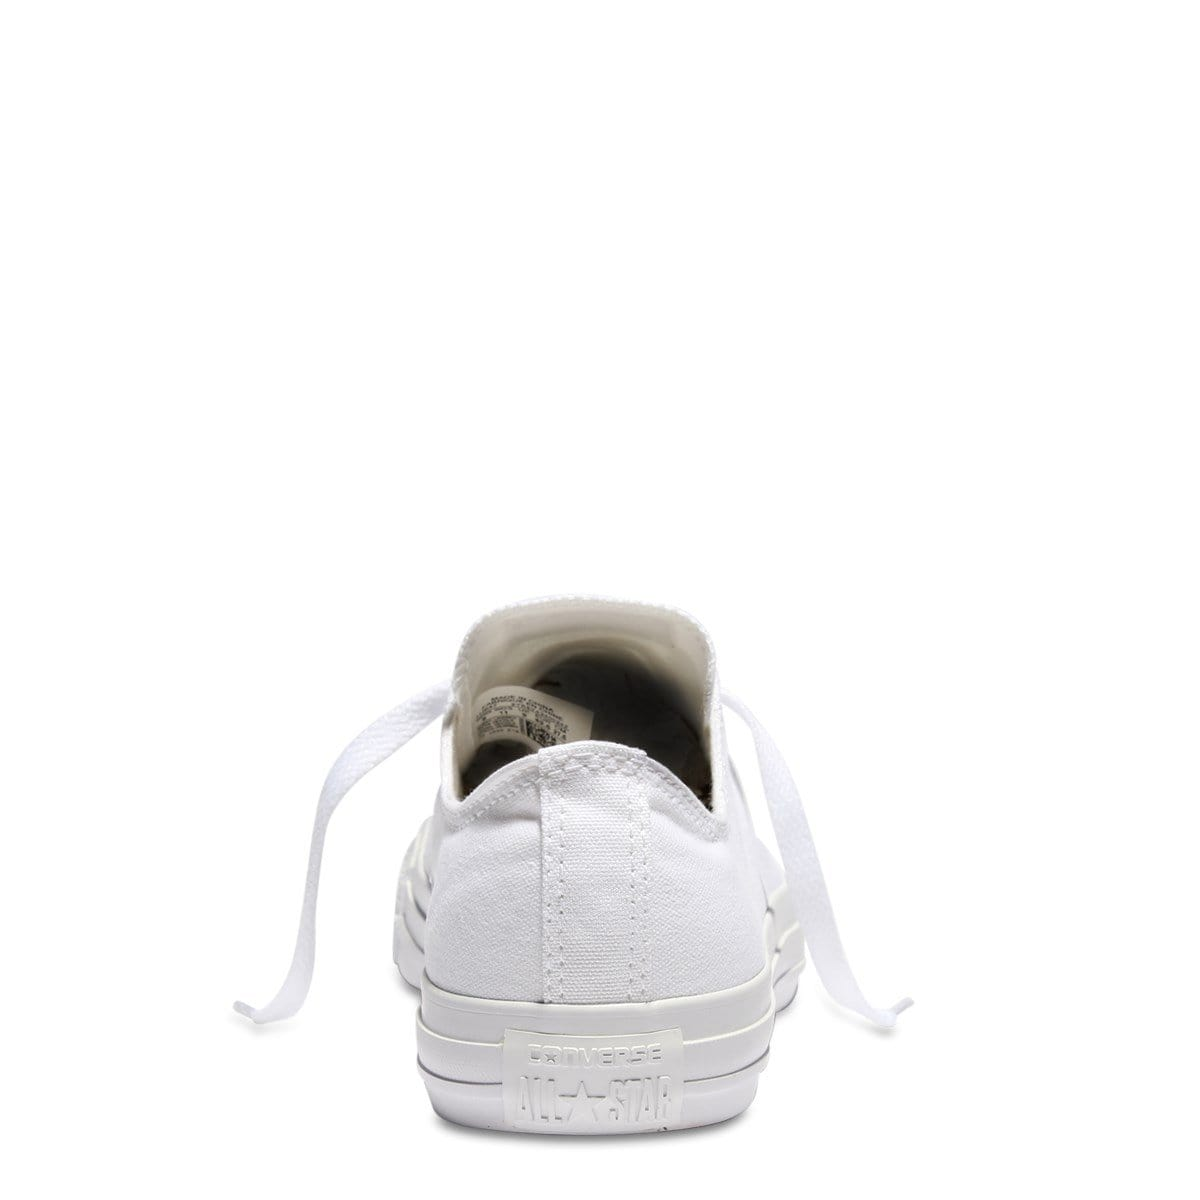 Chuck Taylor All Star Classic Low Top White